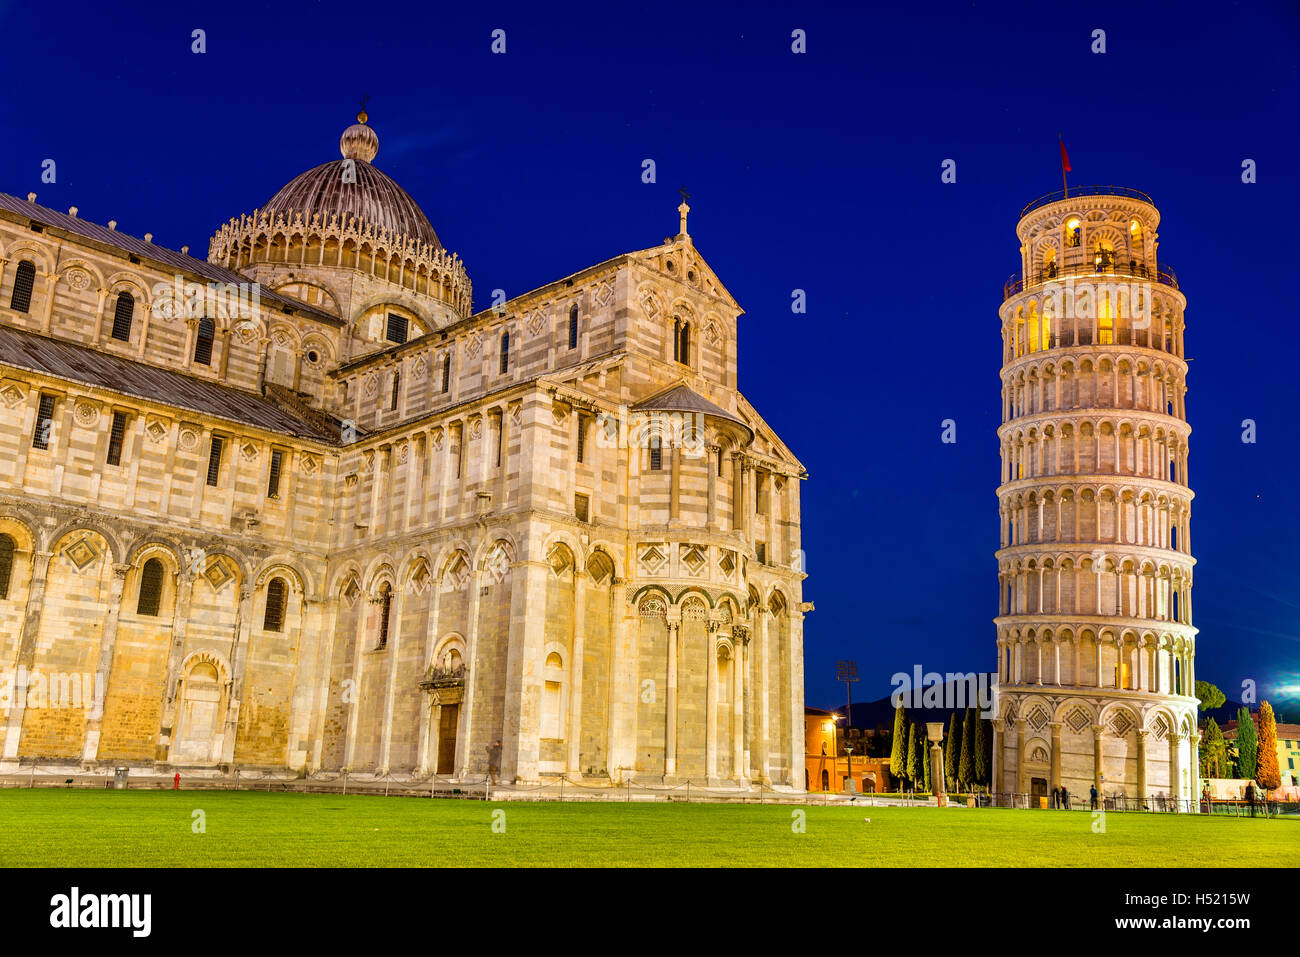 The Leaning Tower of Pisa and the Cathedral in the evening - Stock Image